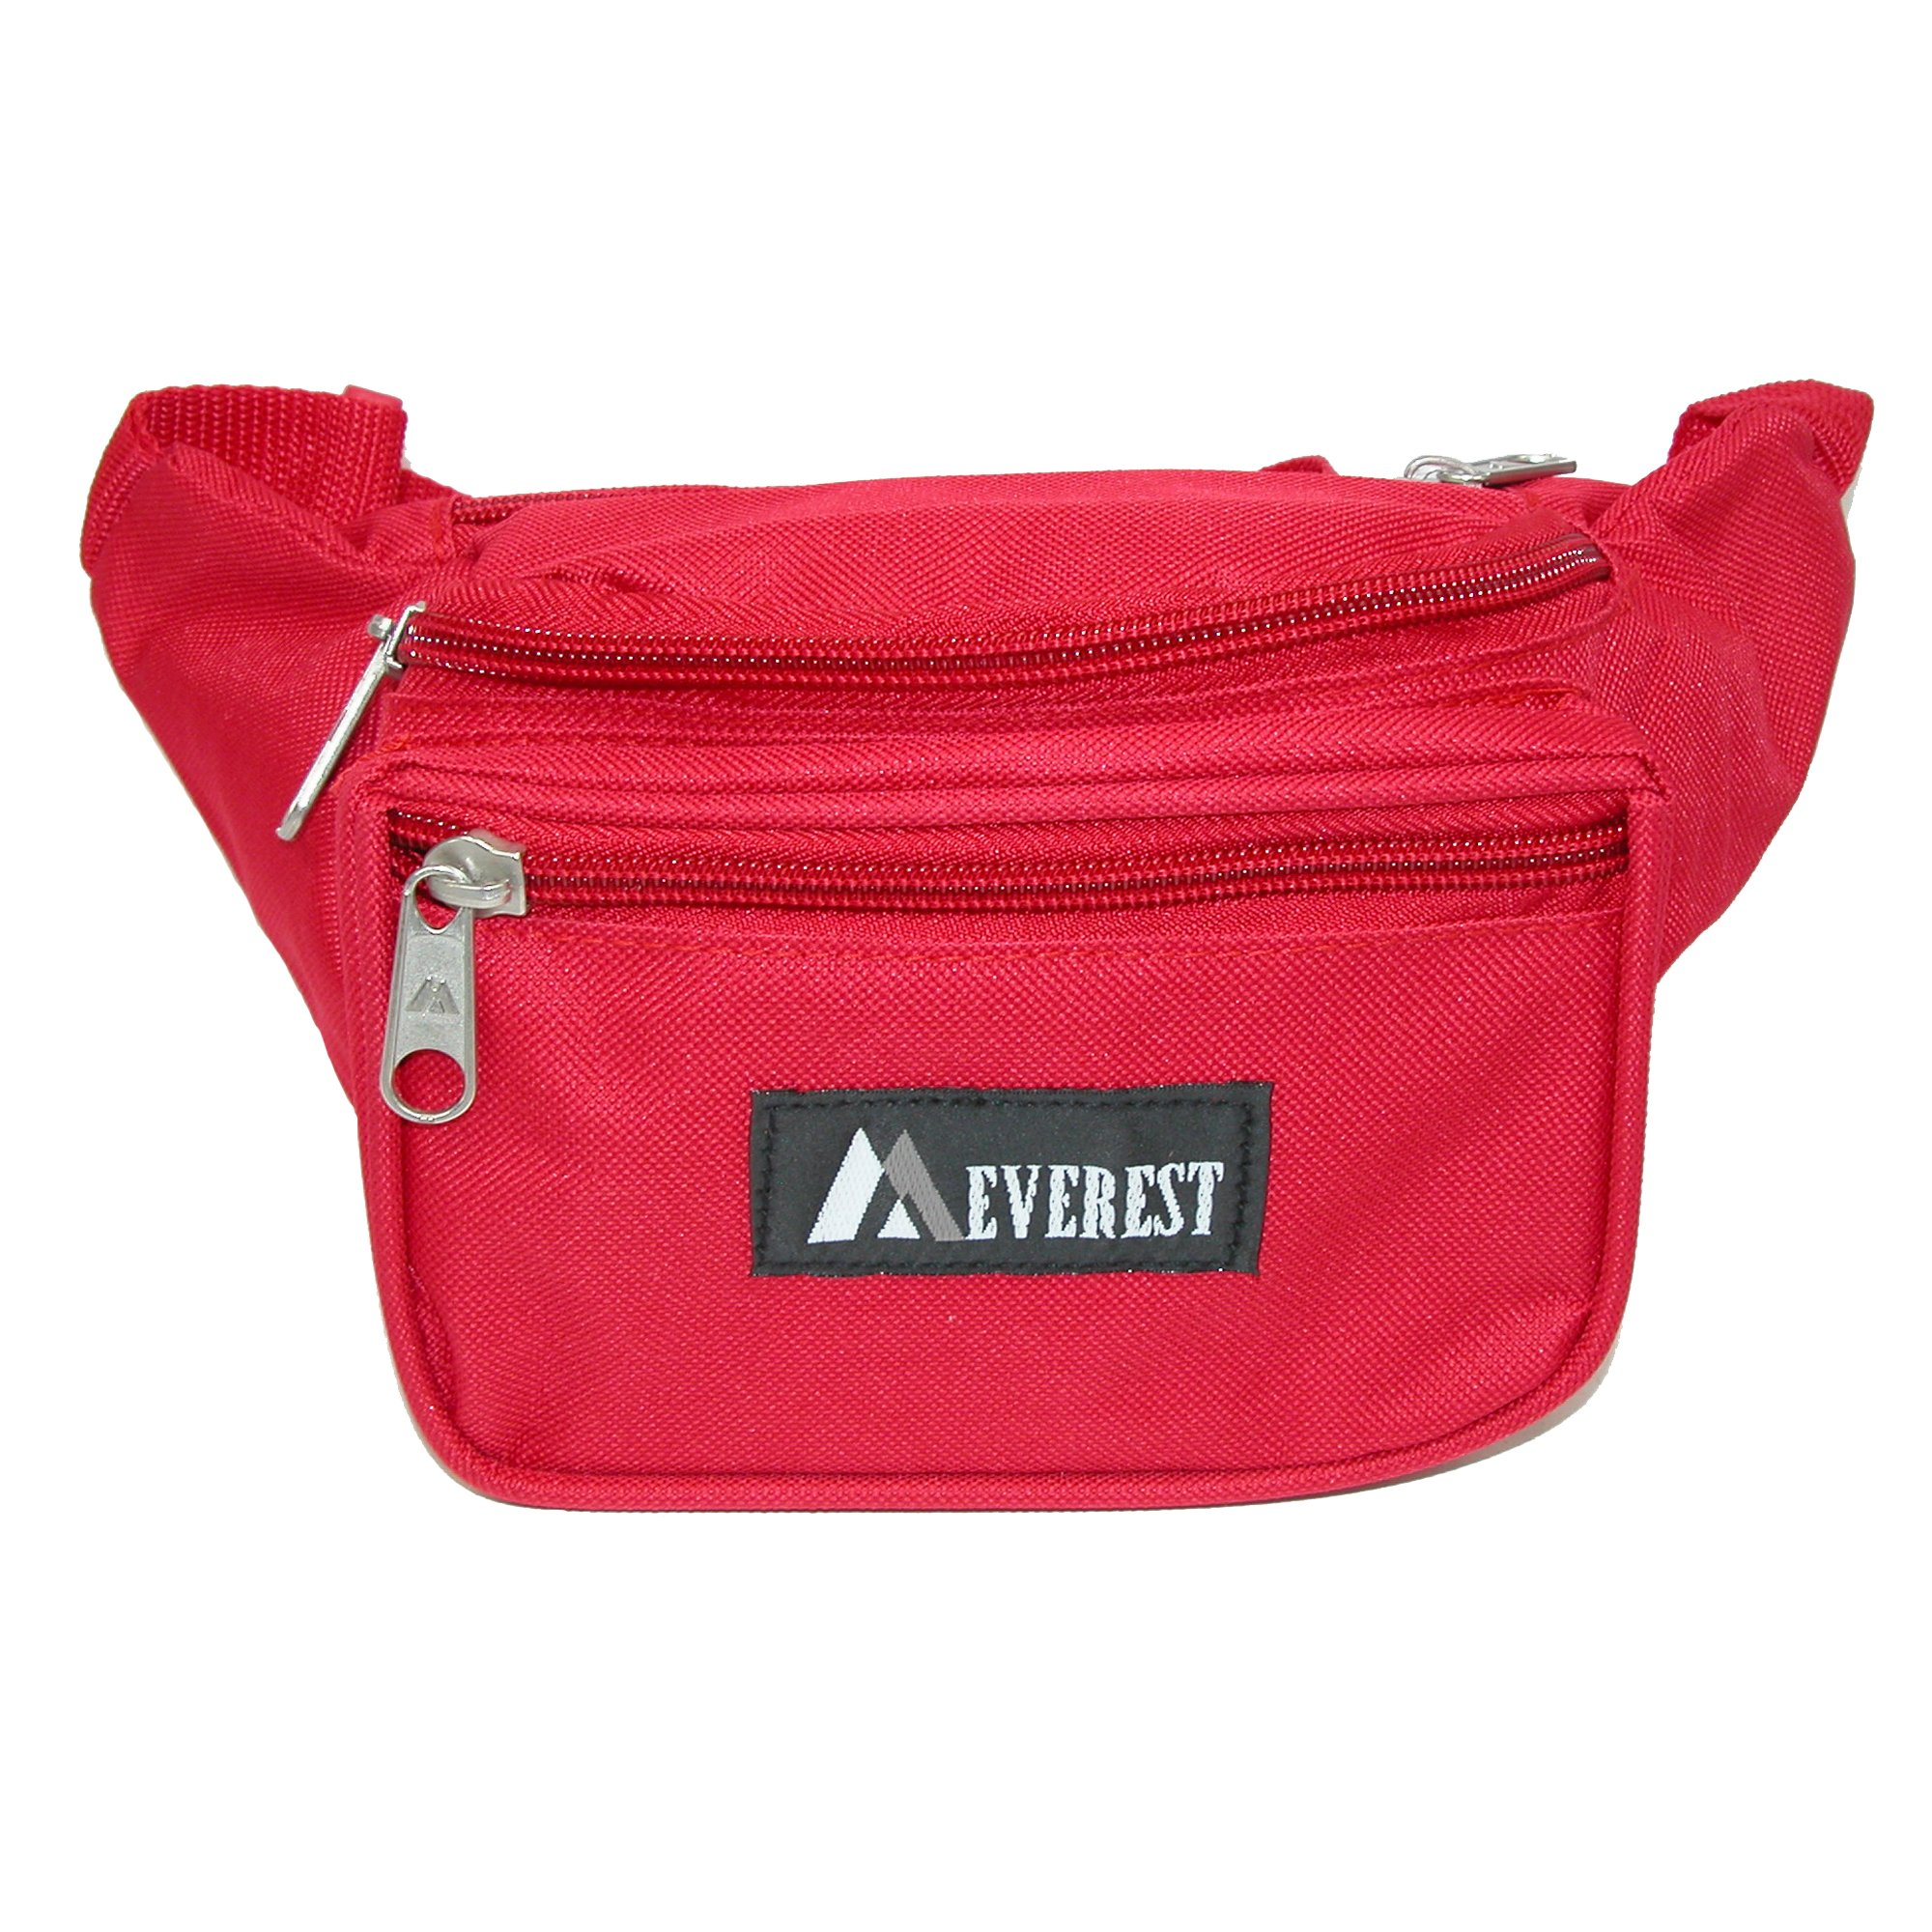 Everest Durable Fabric Waist Packs (Case of 50), Red by everest